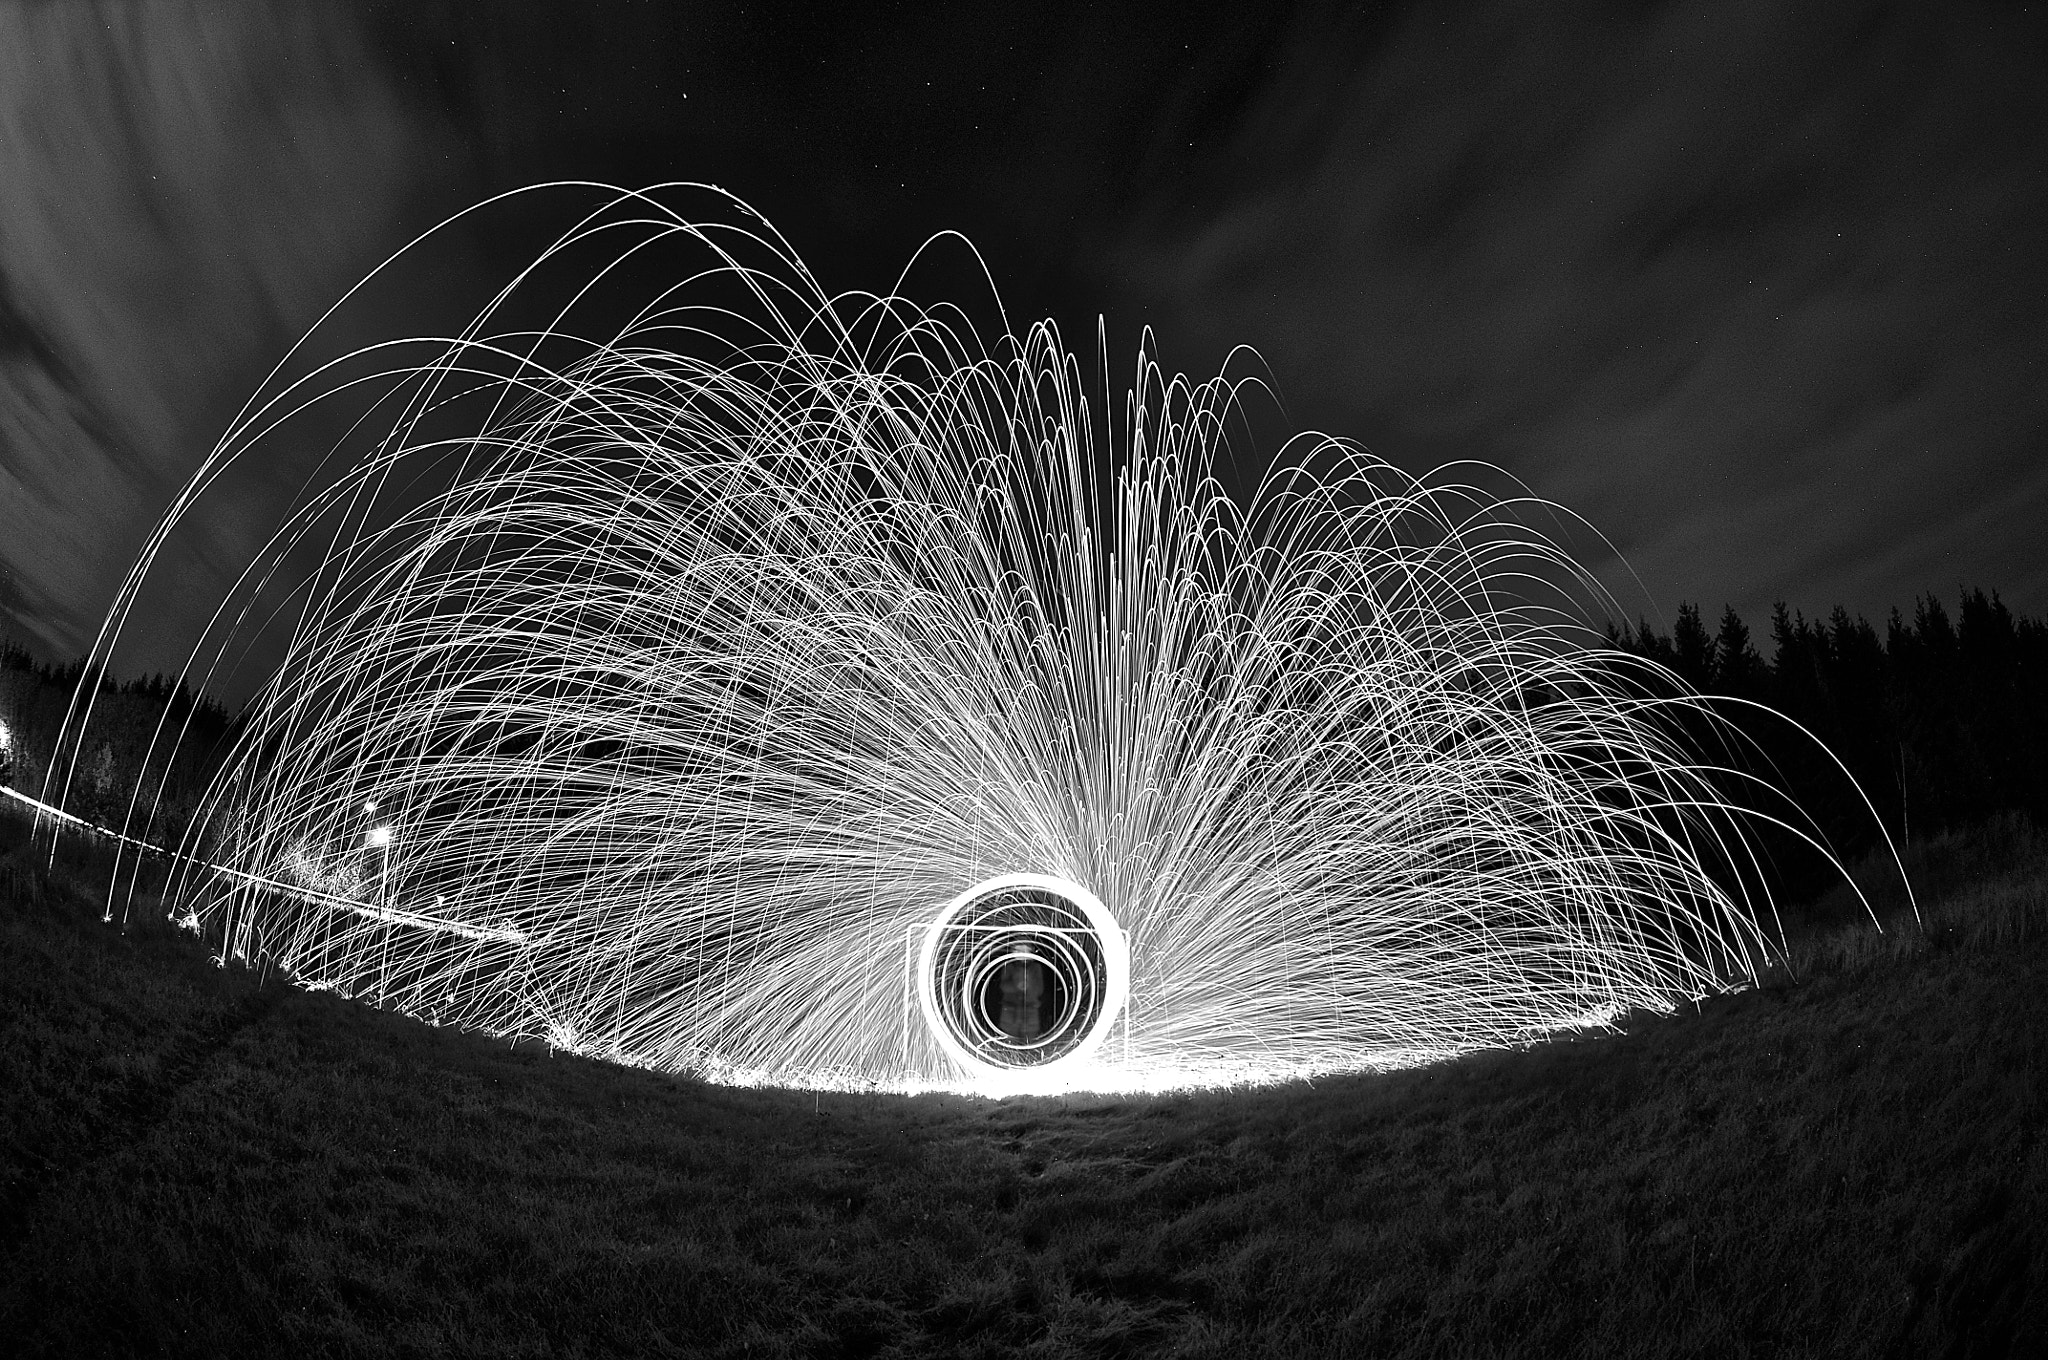 Photograph Black n white steel wool by Joel Ericsson on 500px